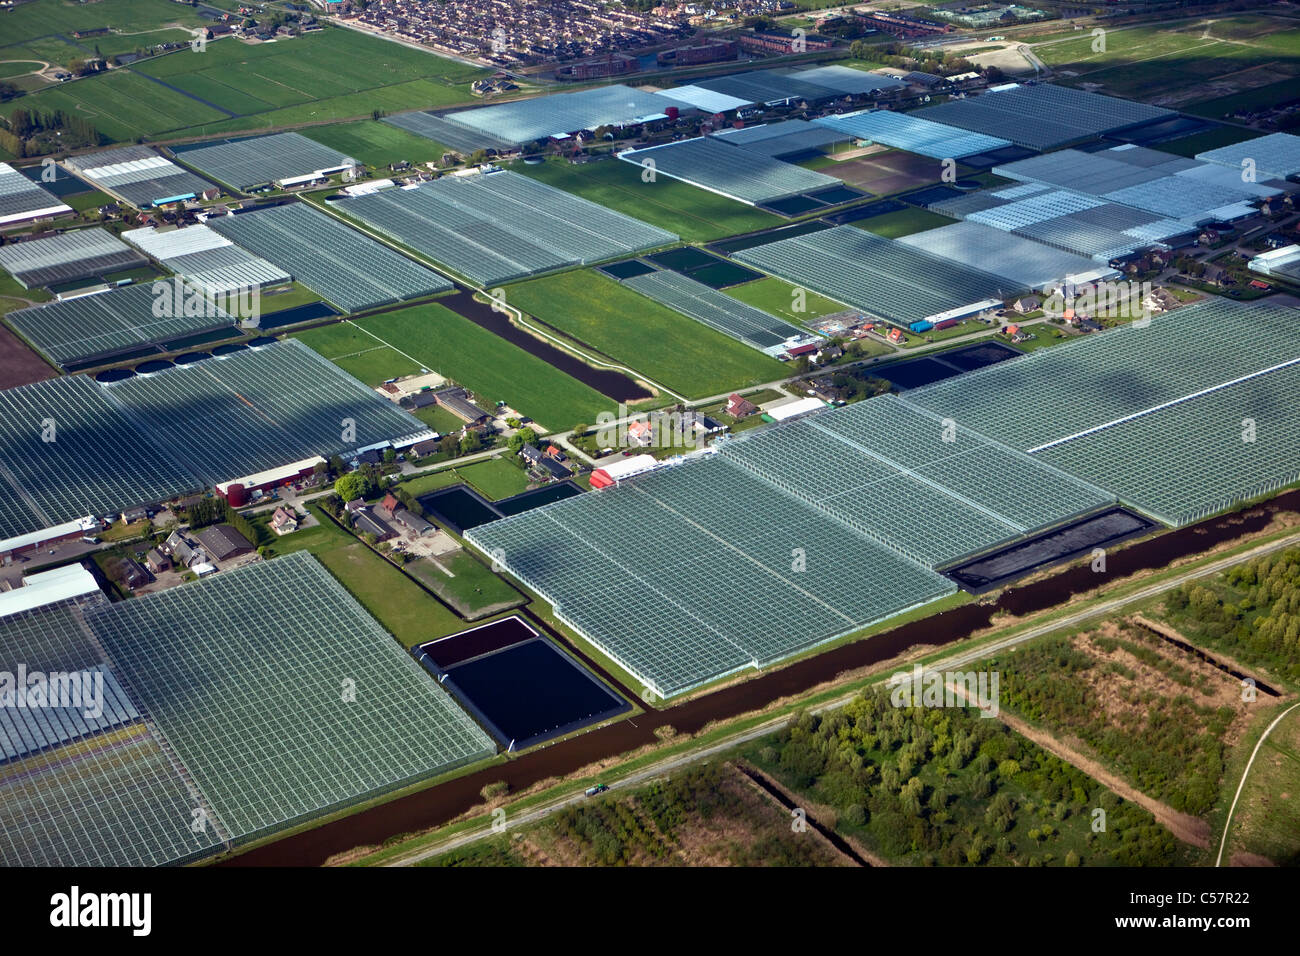 The Netherlands, Pijnacker, Greenhouses. Westland. Aerial. - Stock Image